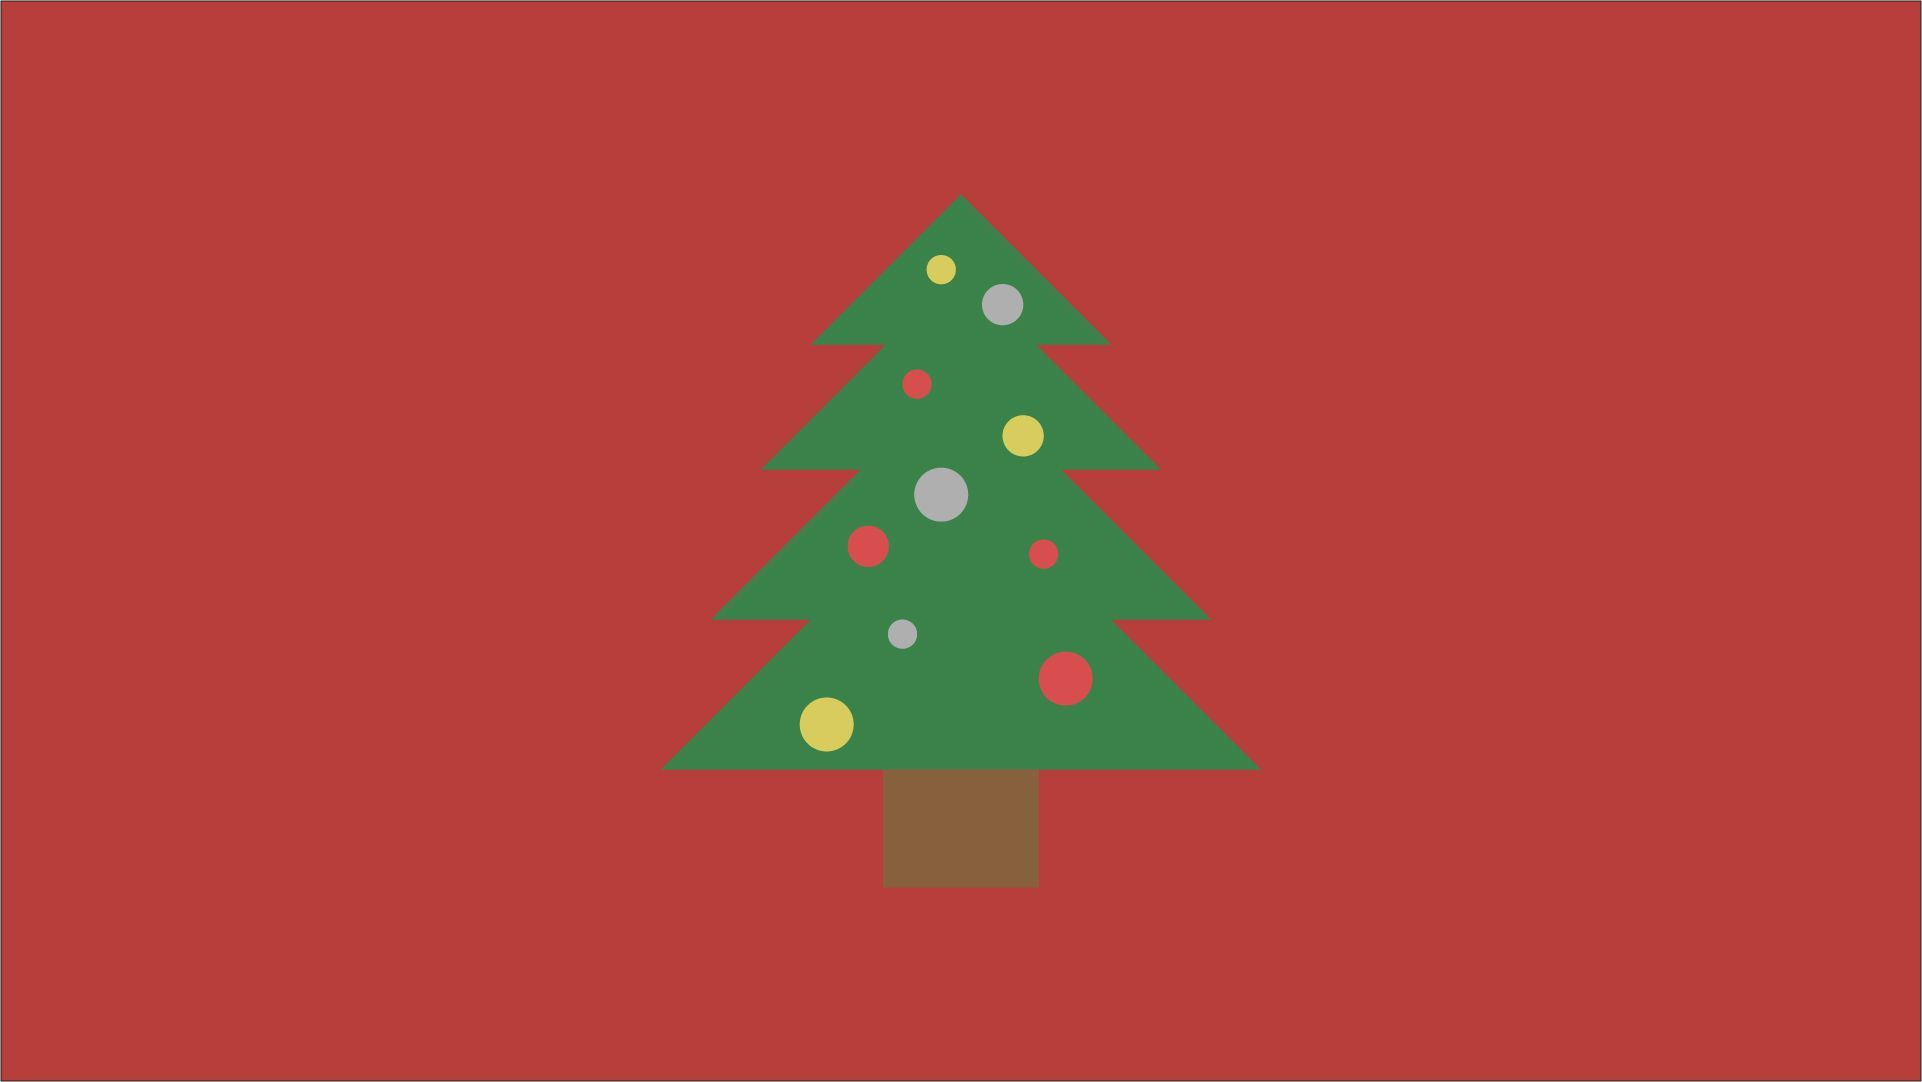 Christmas Wallpaper Hd Minimalist